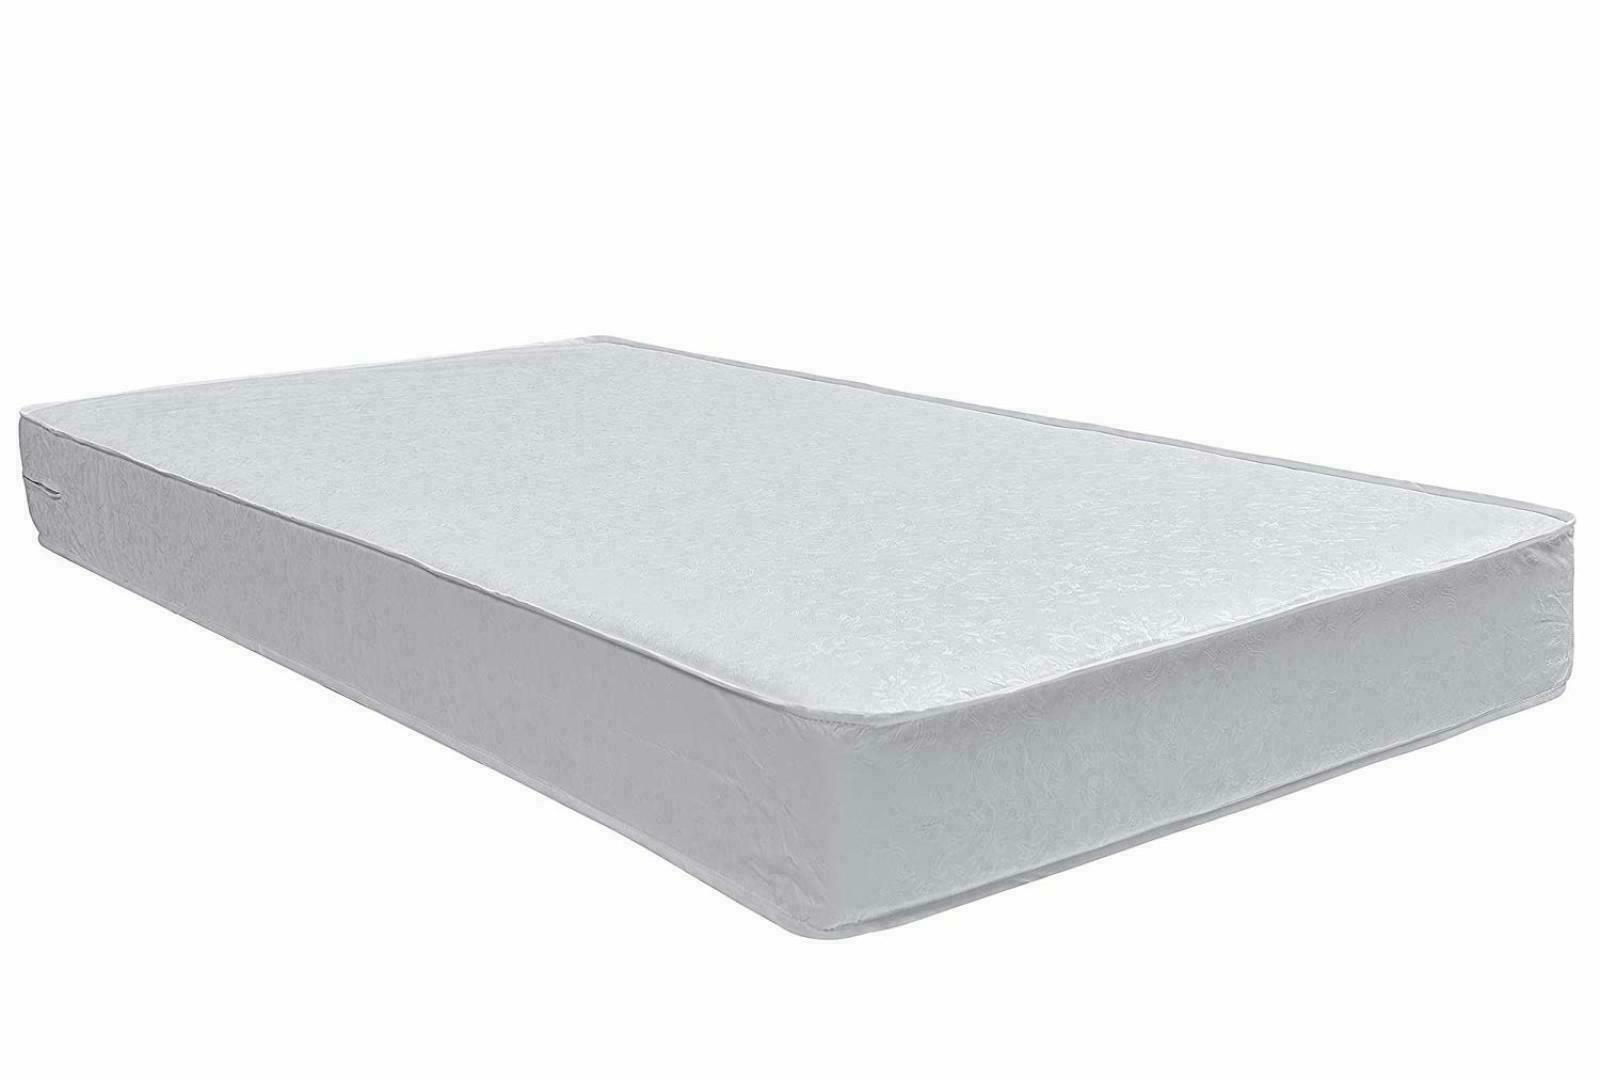 Safety 1st Heavenly Dreams Blue Crib /& Toddler Bed Mattress for Baby /& Toddler,